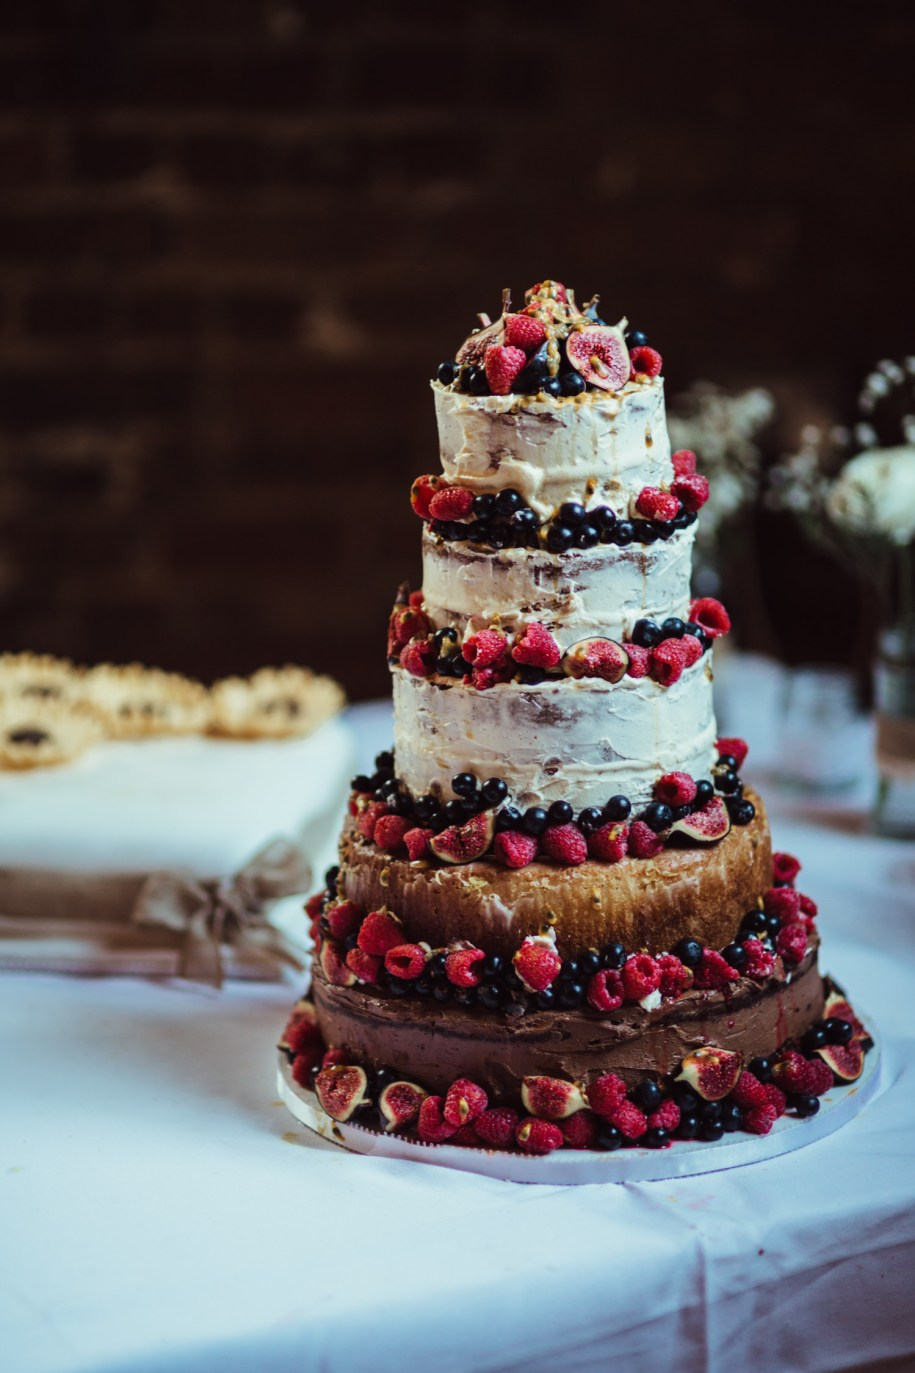 homemade naked cake with lots of berries